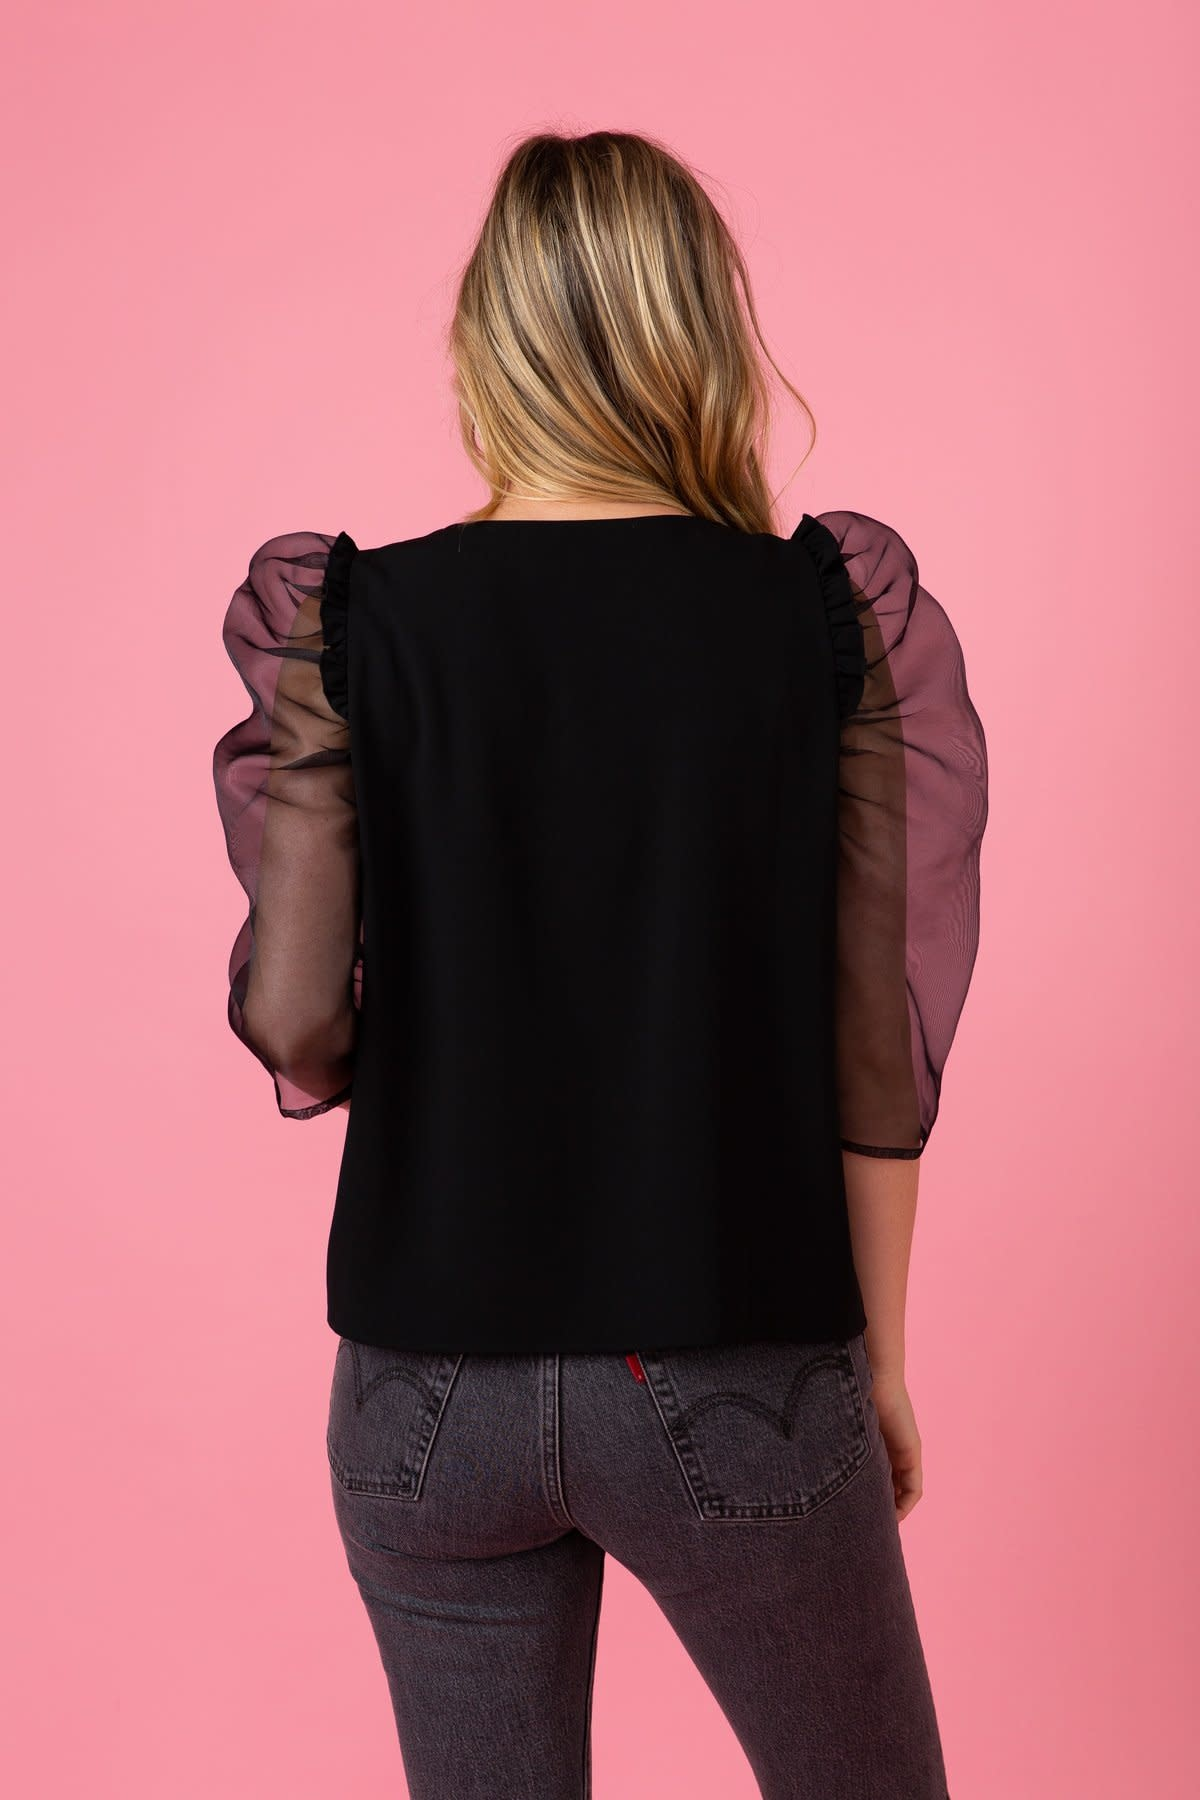 Crosby By Mollie Burch Keeva Top in Black